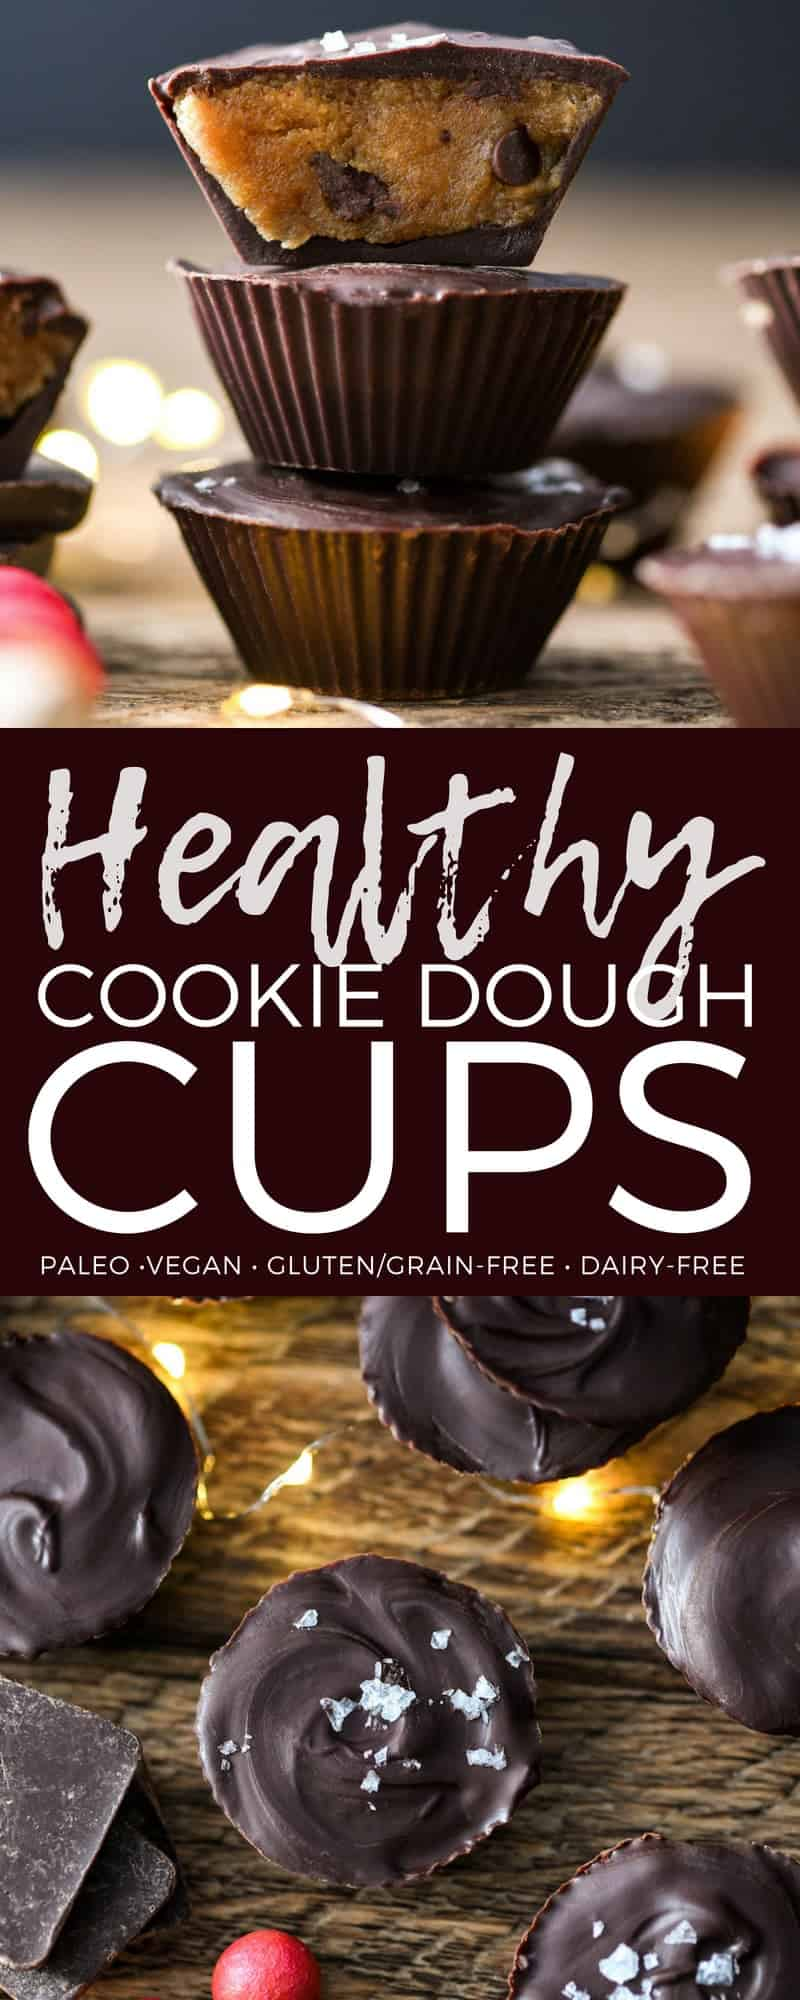 These No-Bake Vegan & Paleo Cookie Dough Cups are a delicious, easy & healthy treat to make for friends and neighbors this Christmas! #glutenfree #grainfree #dairyfree #vegan #paleo #cookiedough #dessert #christmas